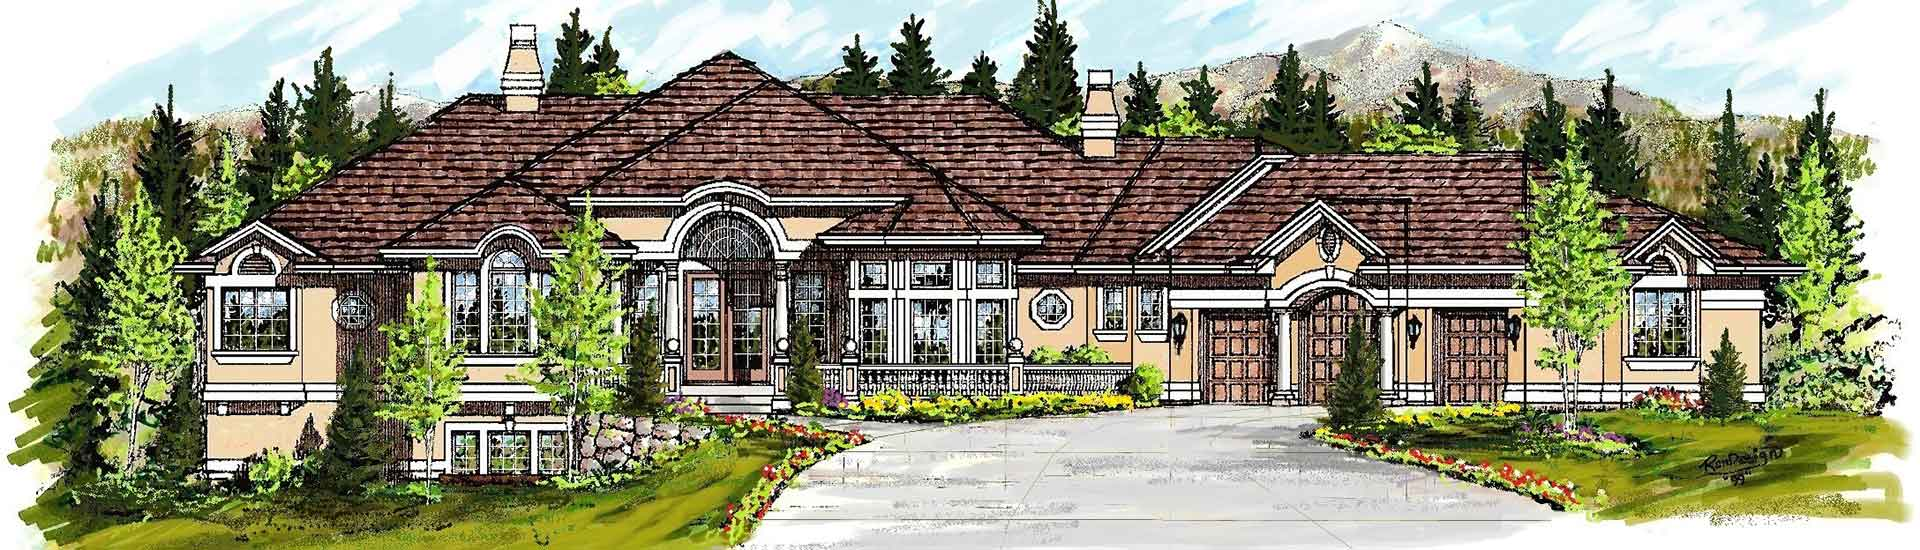 Custom home floor plans and blueprints in colorado springs custom home floor plans in colorado springs co malvernweather Images